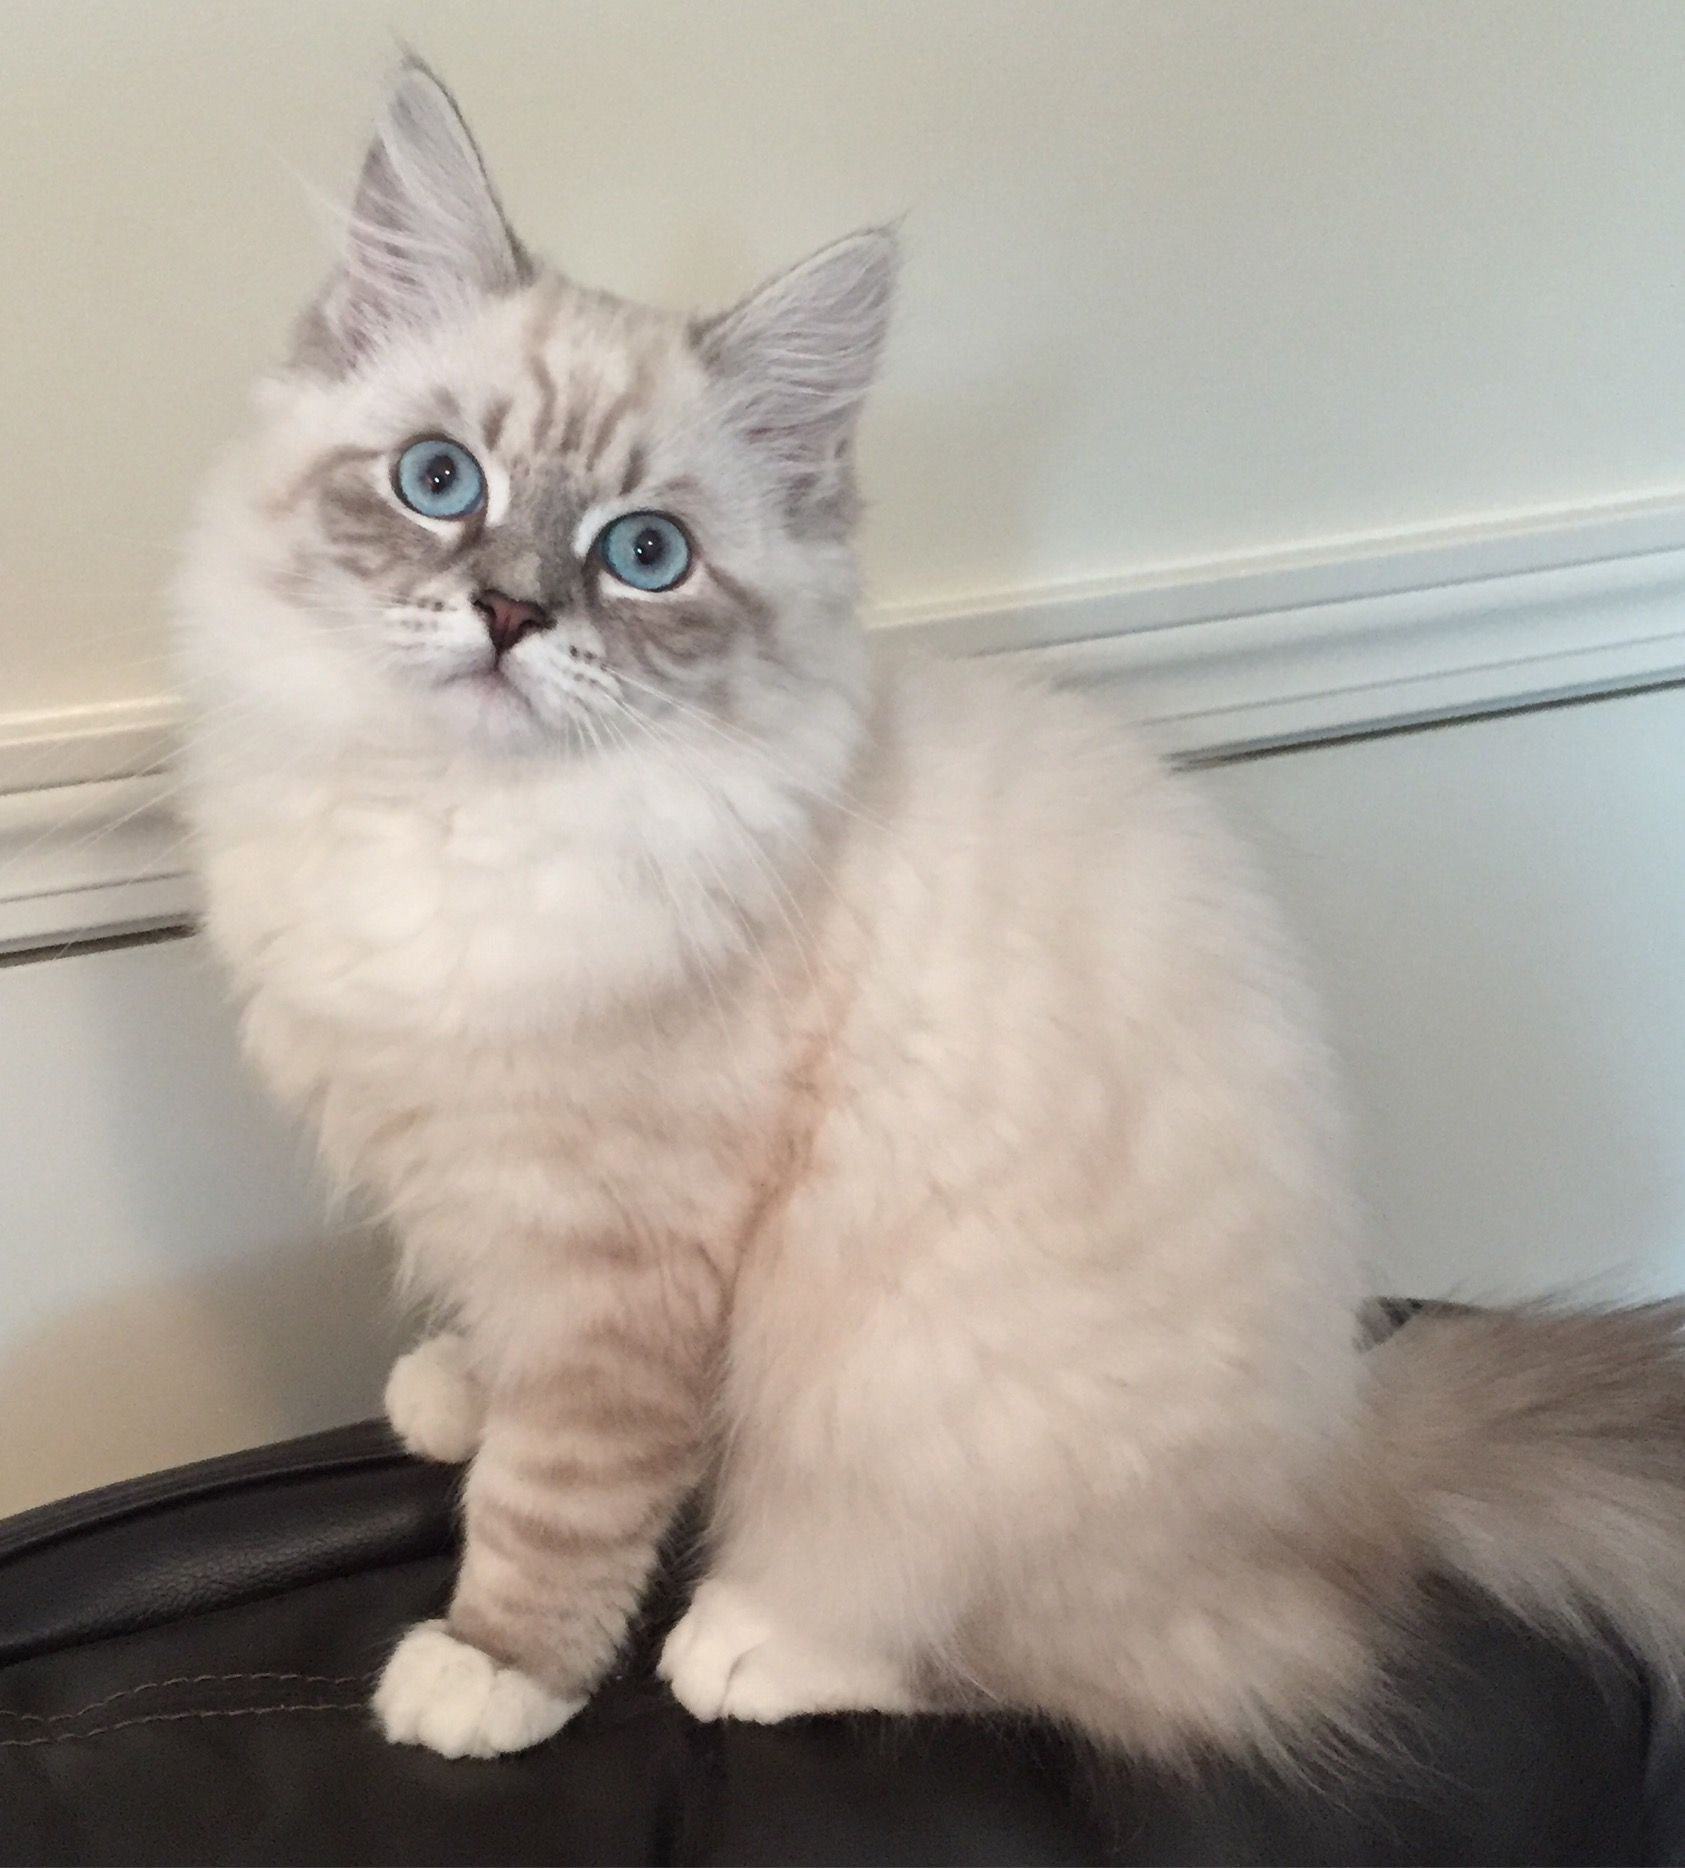 Saban Blue Lynx Point With White Siberian Kitten Cat Born 5 9 16 Ragdoll Cat Breeders Cats Cats And Kittens